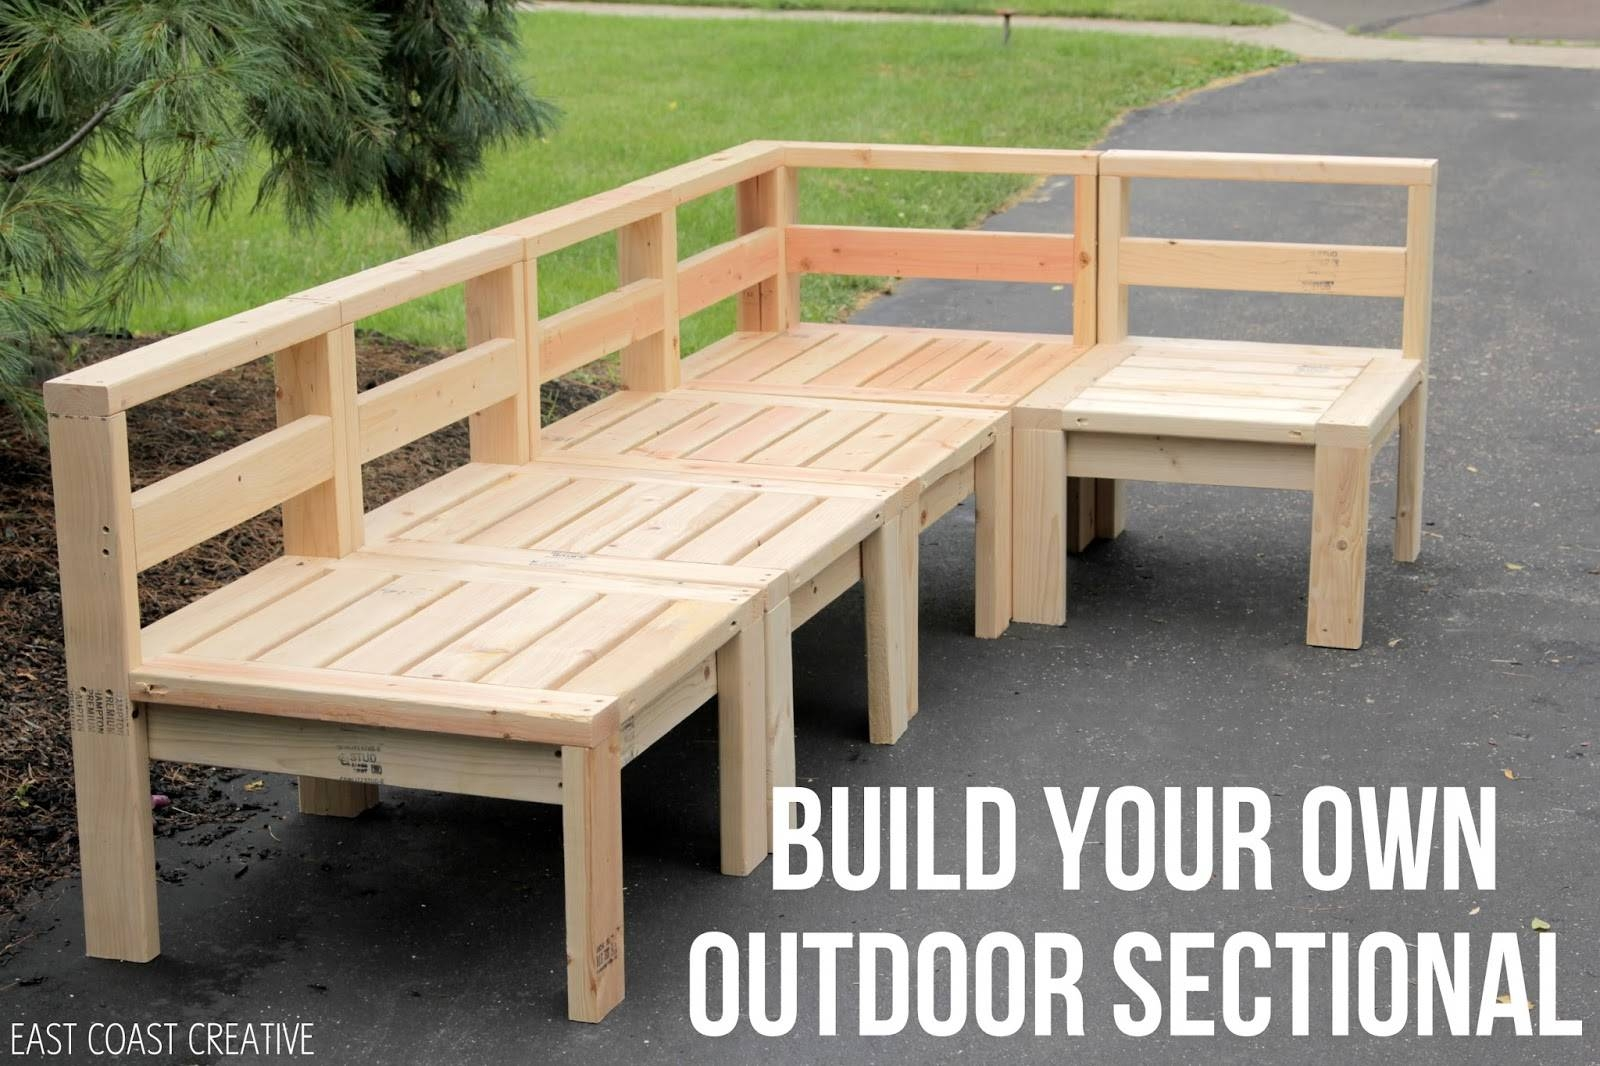 How To Build An Outdoor Sectional {Knock It Off} - East Coast pertaining to Diy Sectional Sofa Plans (Image 14 of 30)